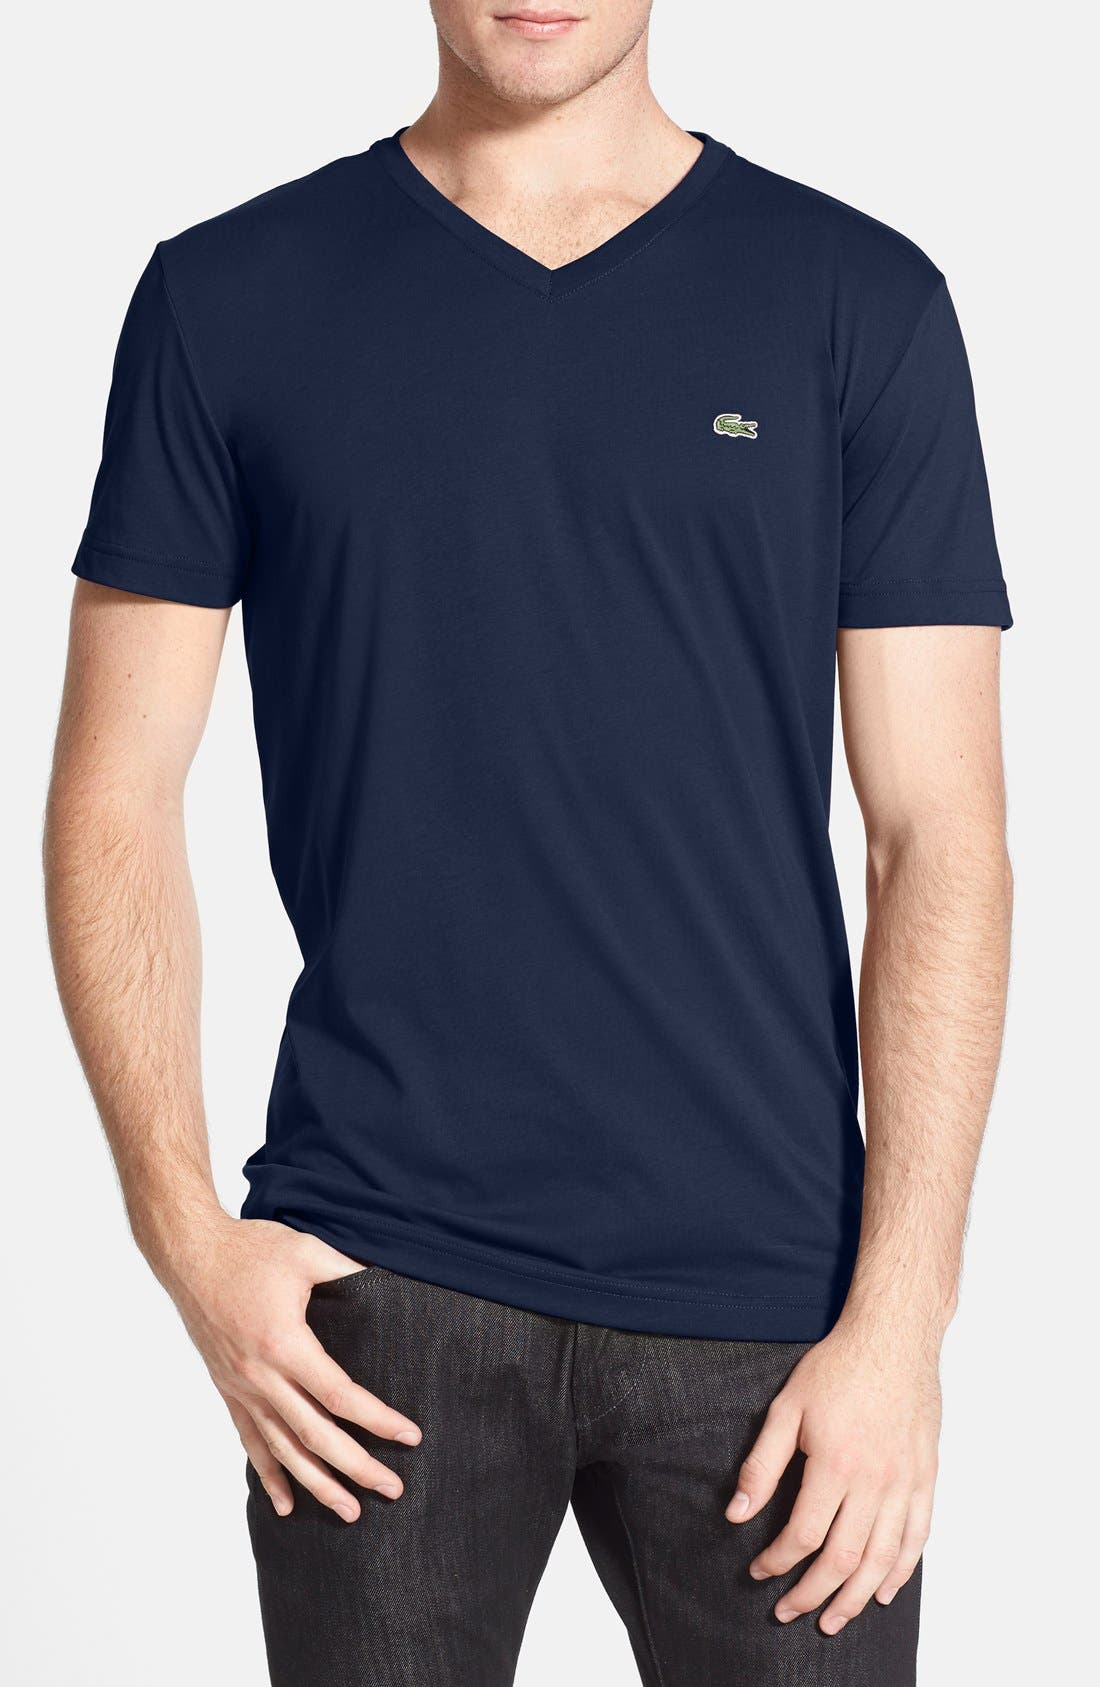 Lacoste Pima Cotton Jersey V-Neck T-Shirt